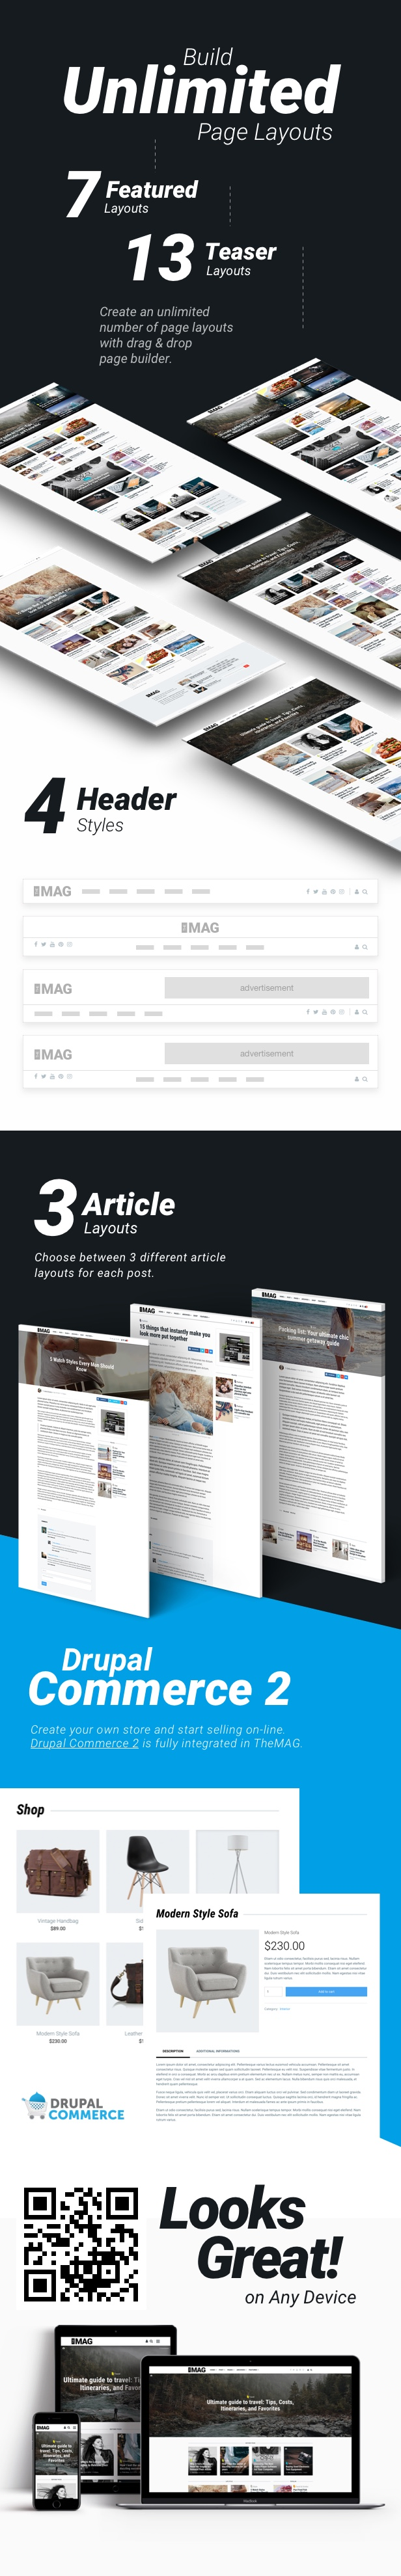 themag features  rest 1 - TheMAG - Highly Customizable Blog and Magazine Theme for Drupal